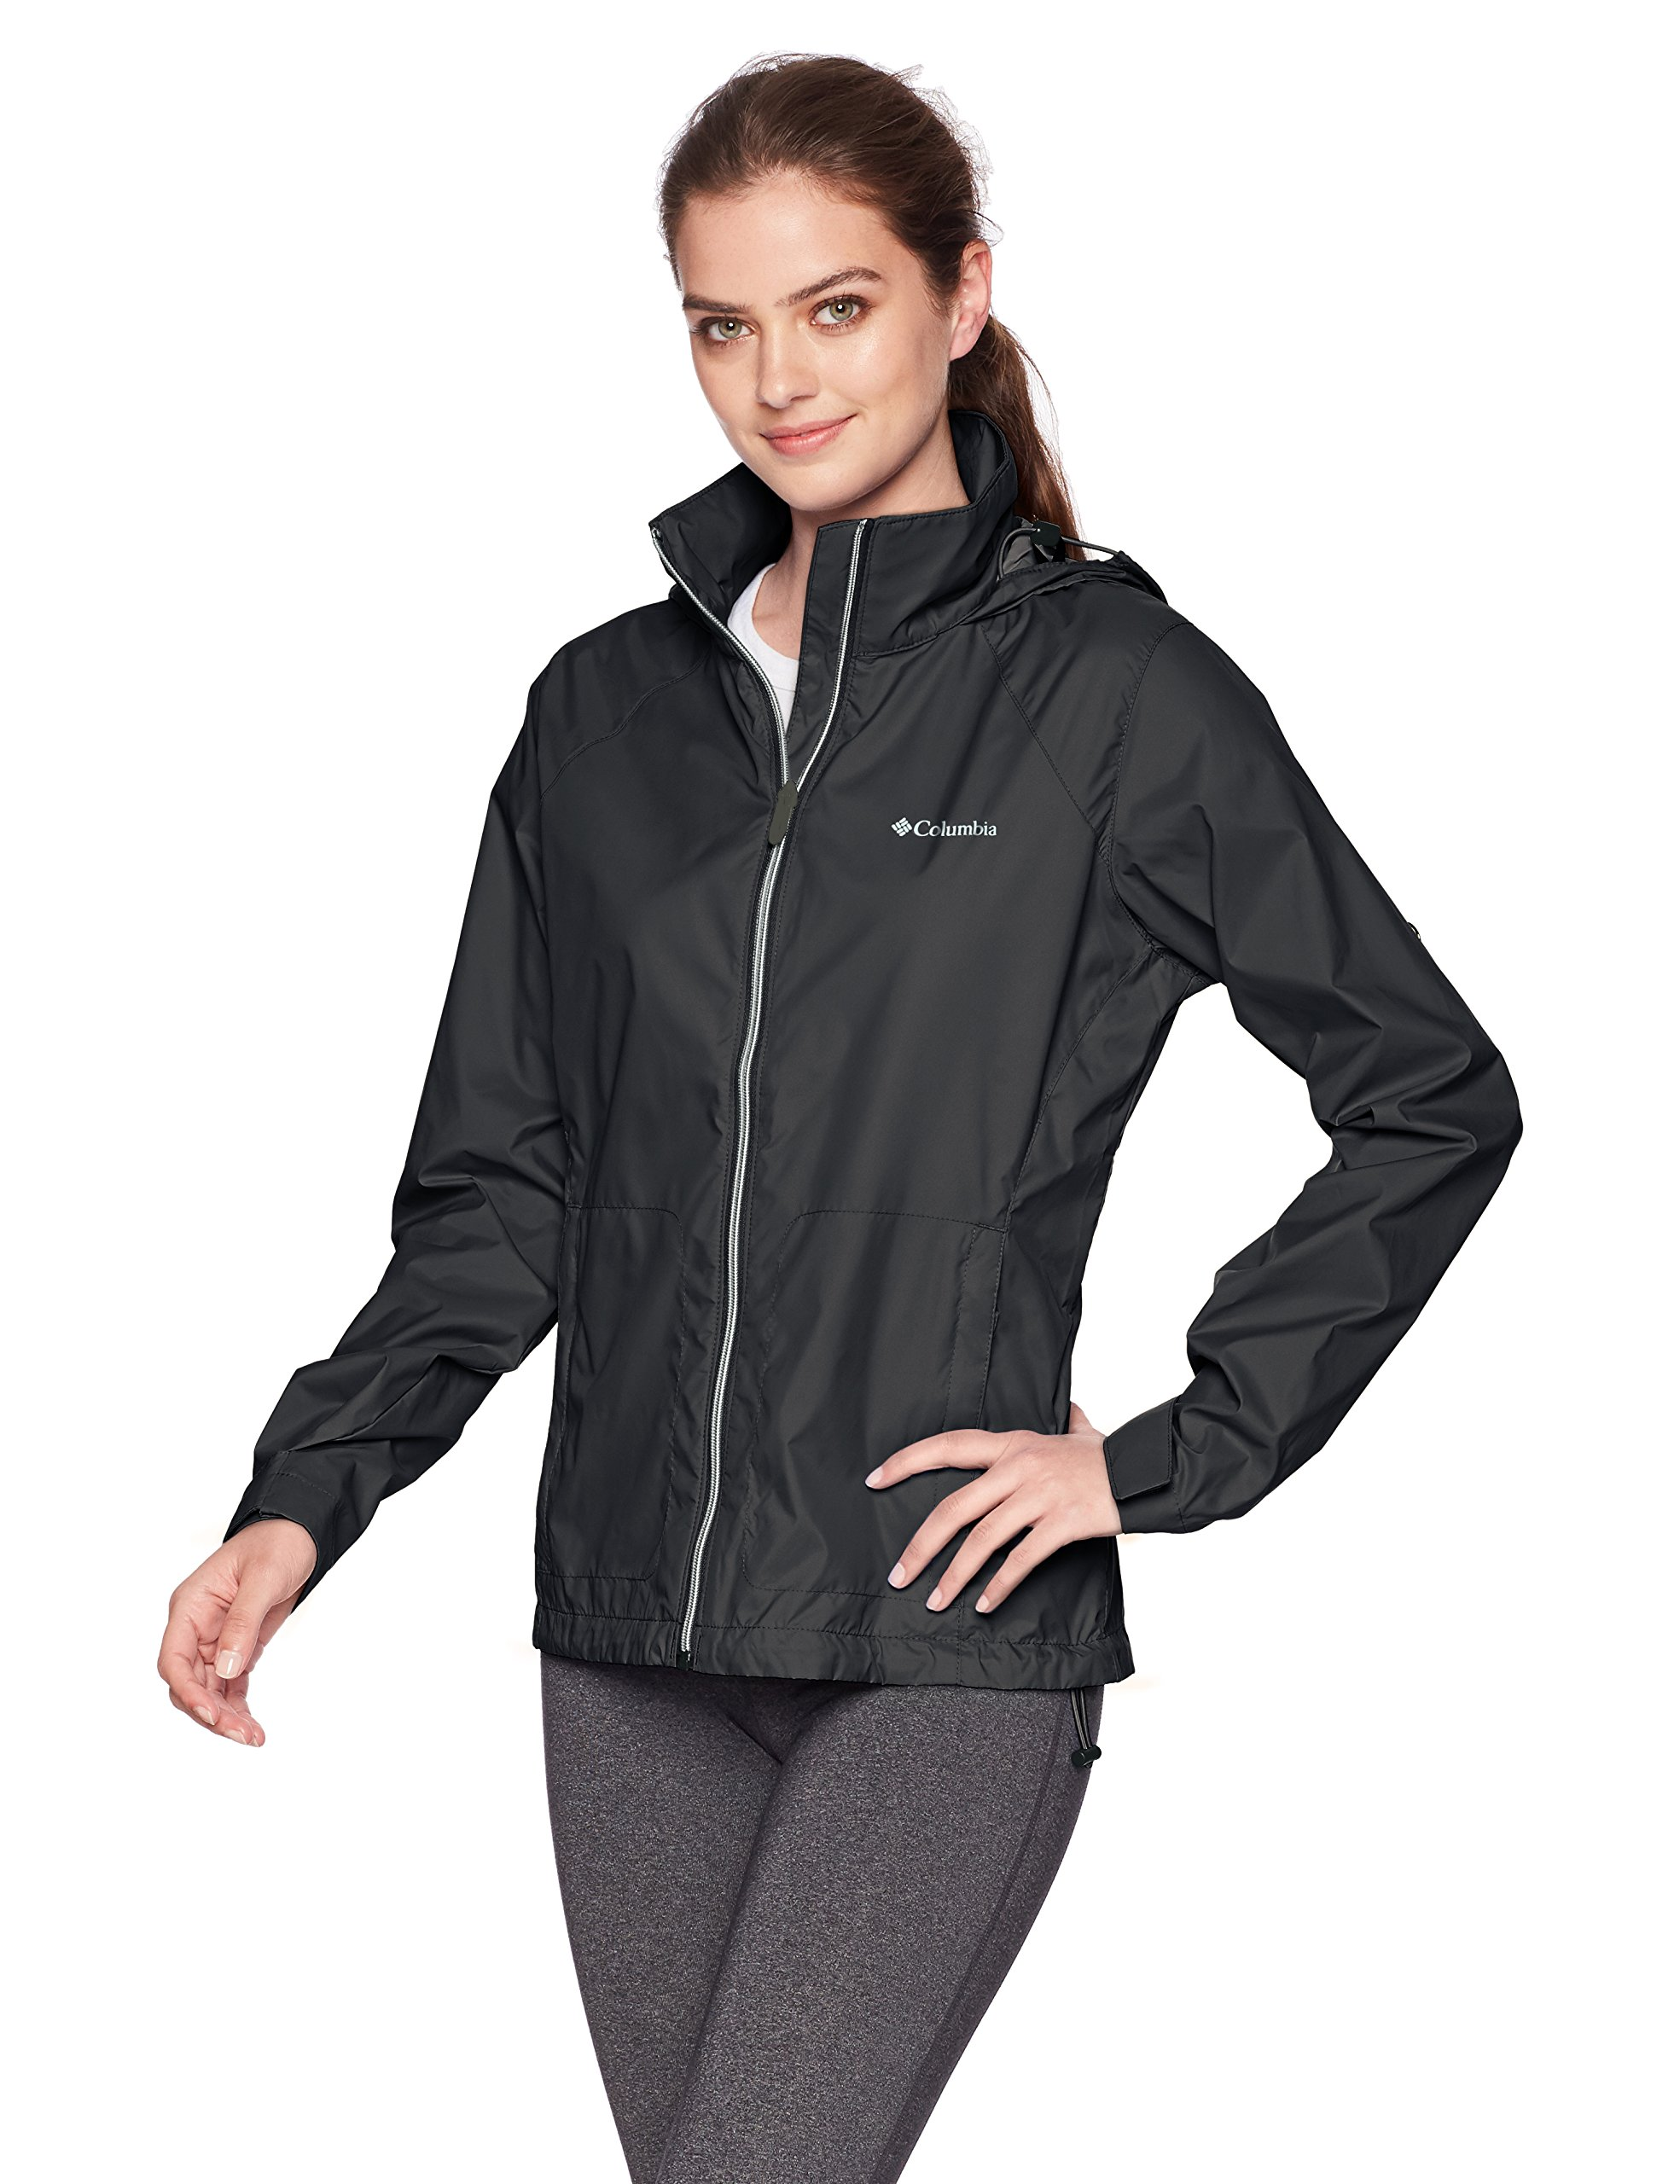 Columbia Women's Switchback III Adjustable Waterproof Rain Jacket, Black, Medium